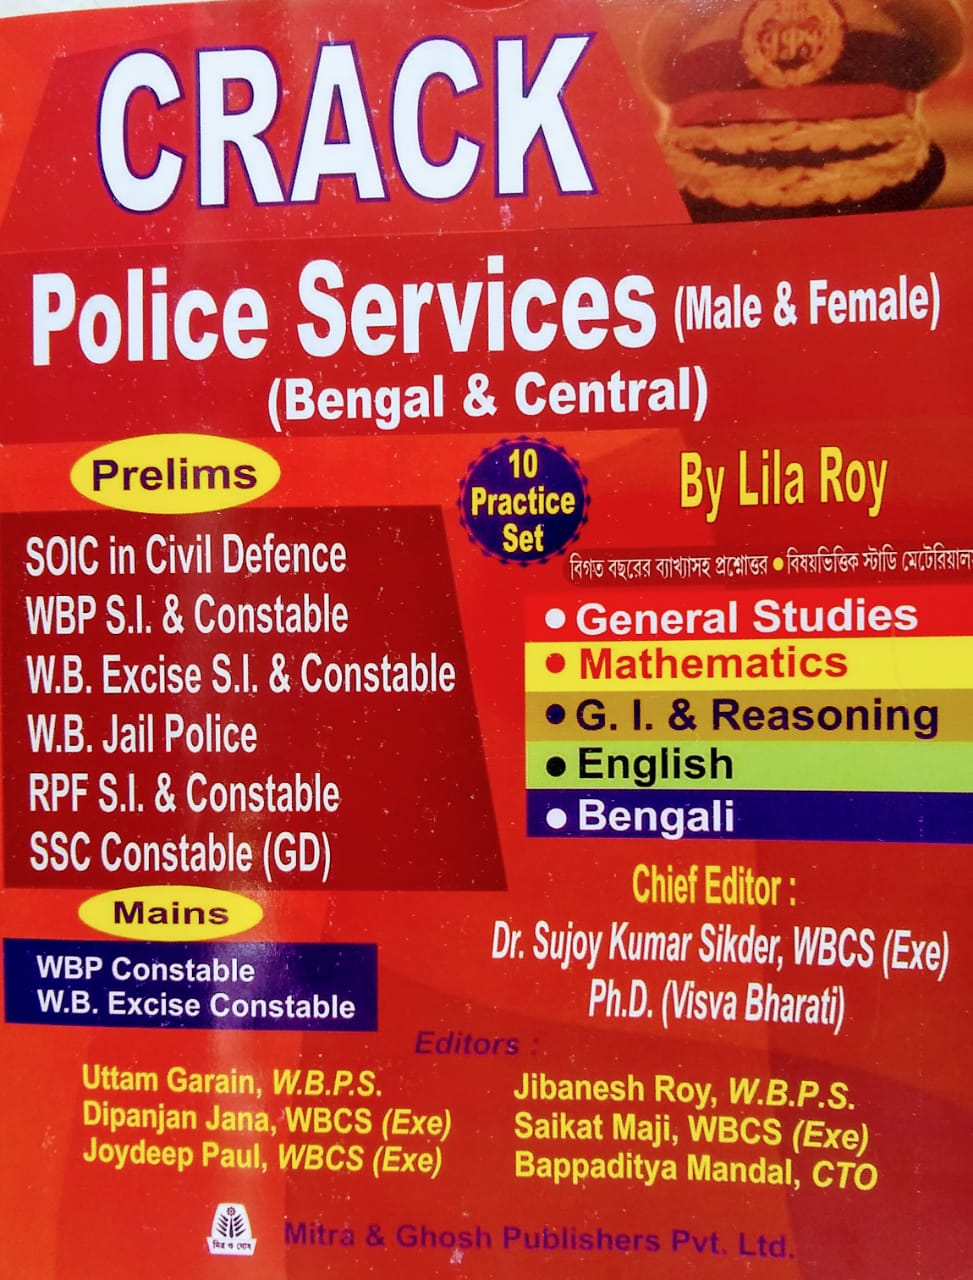 CRACK Police Services (Male & Female)